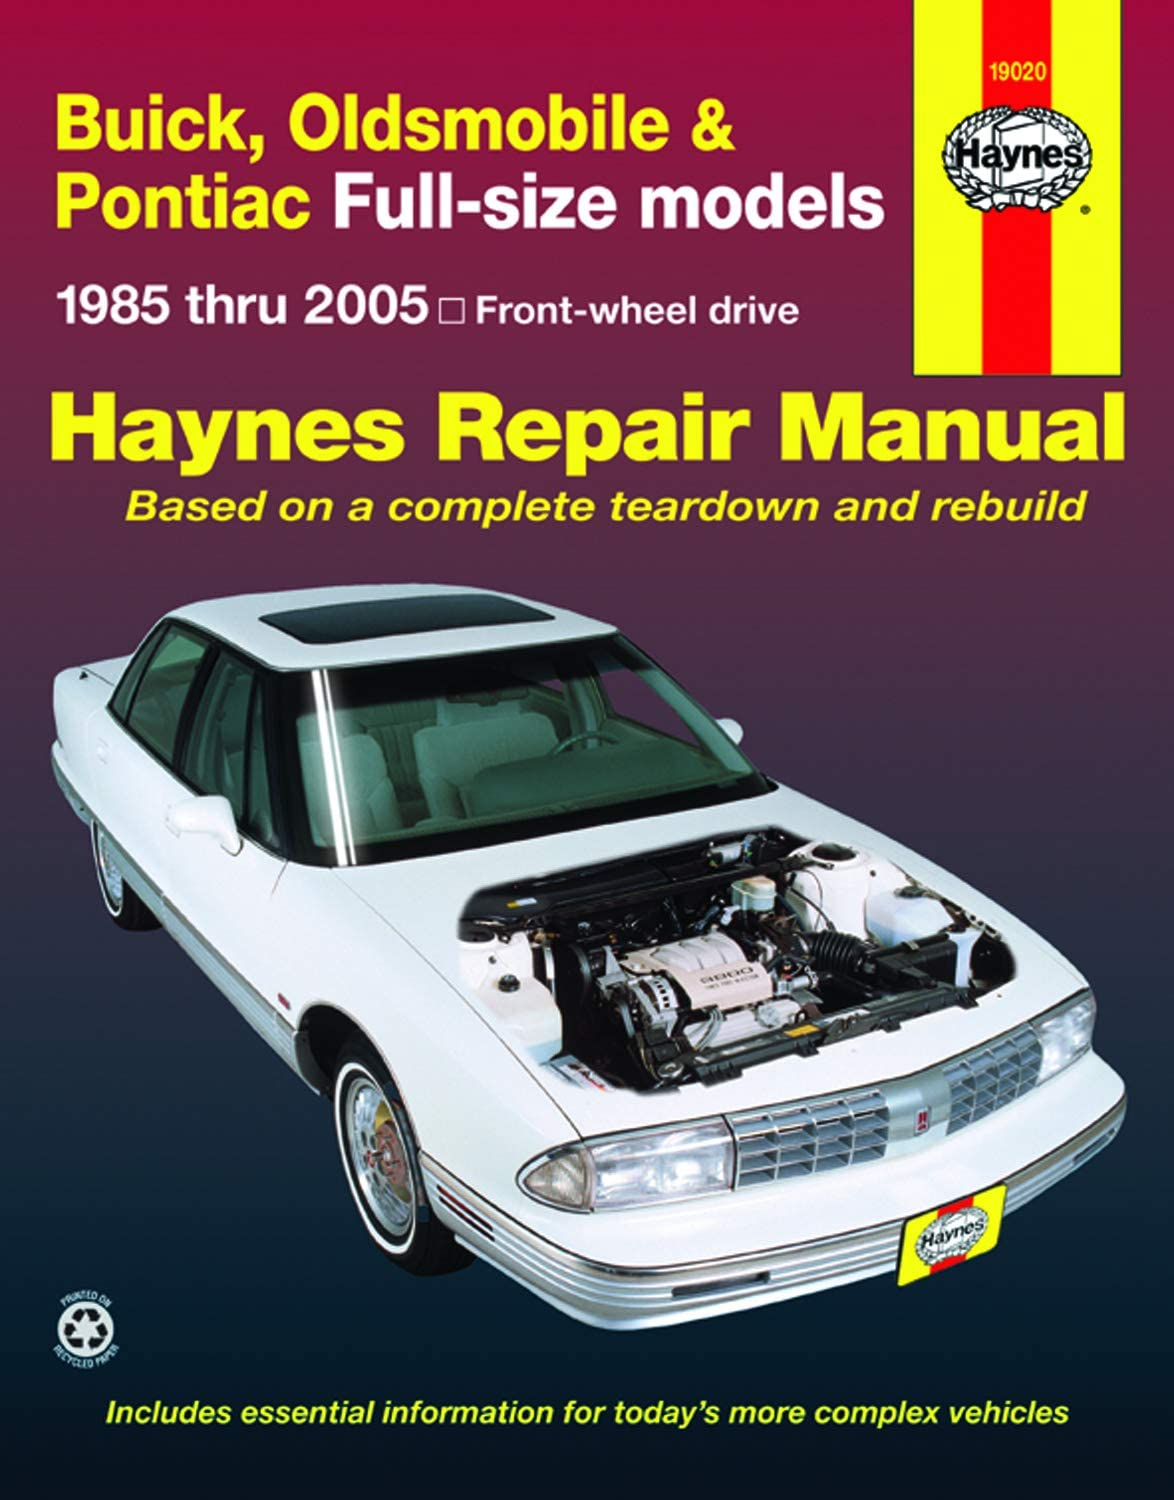 Front-wheel drive Oldsmobile /& Pontiac Full-size models 1985 thru 2005 Buick